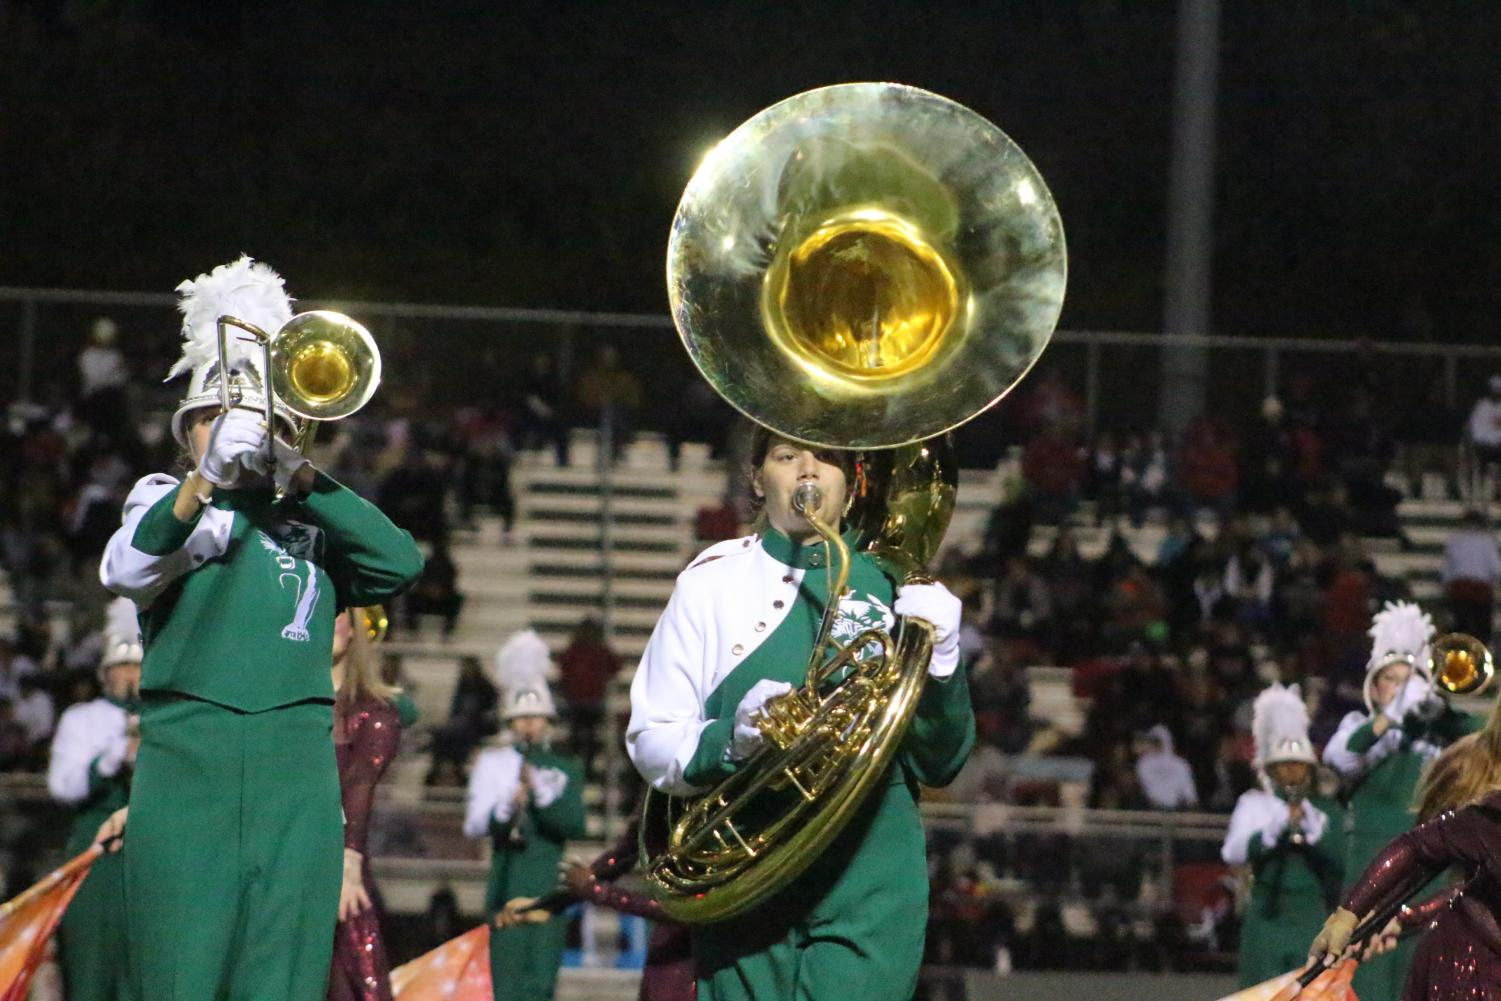 A+sousaphone+player+performs+during+halftime